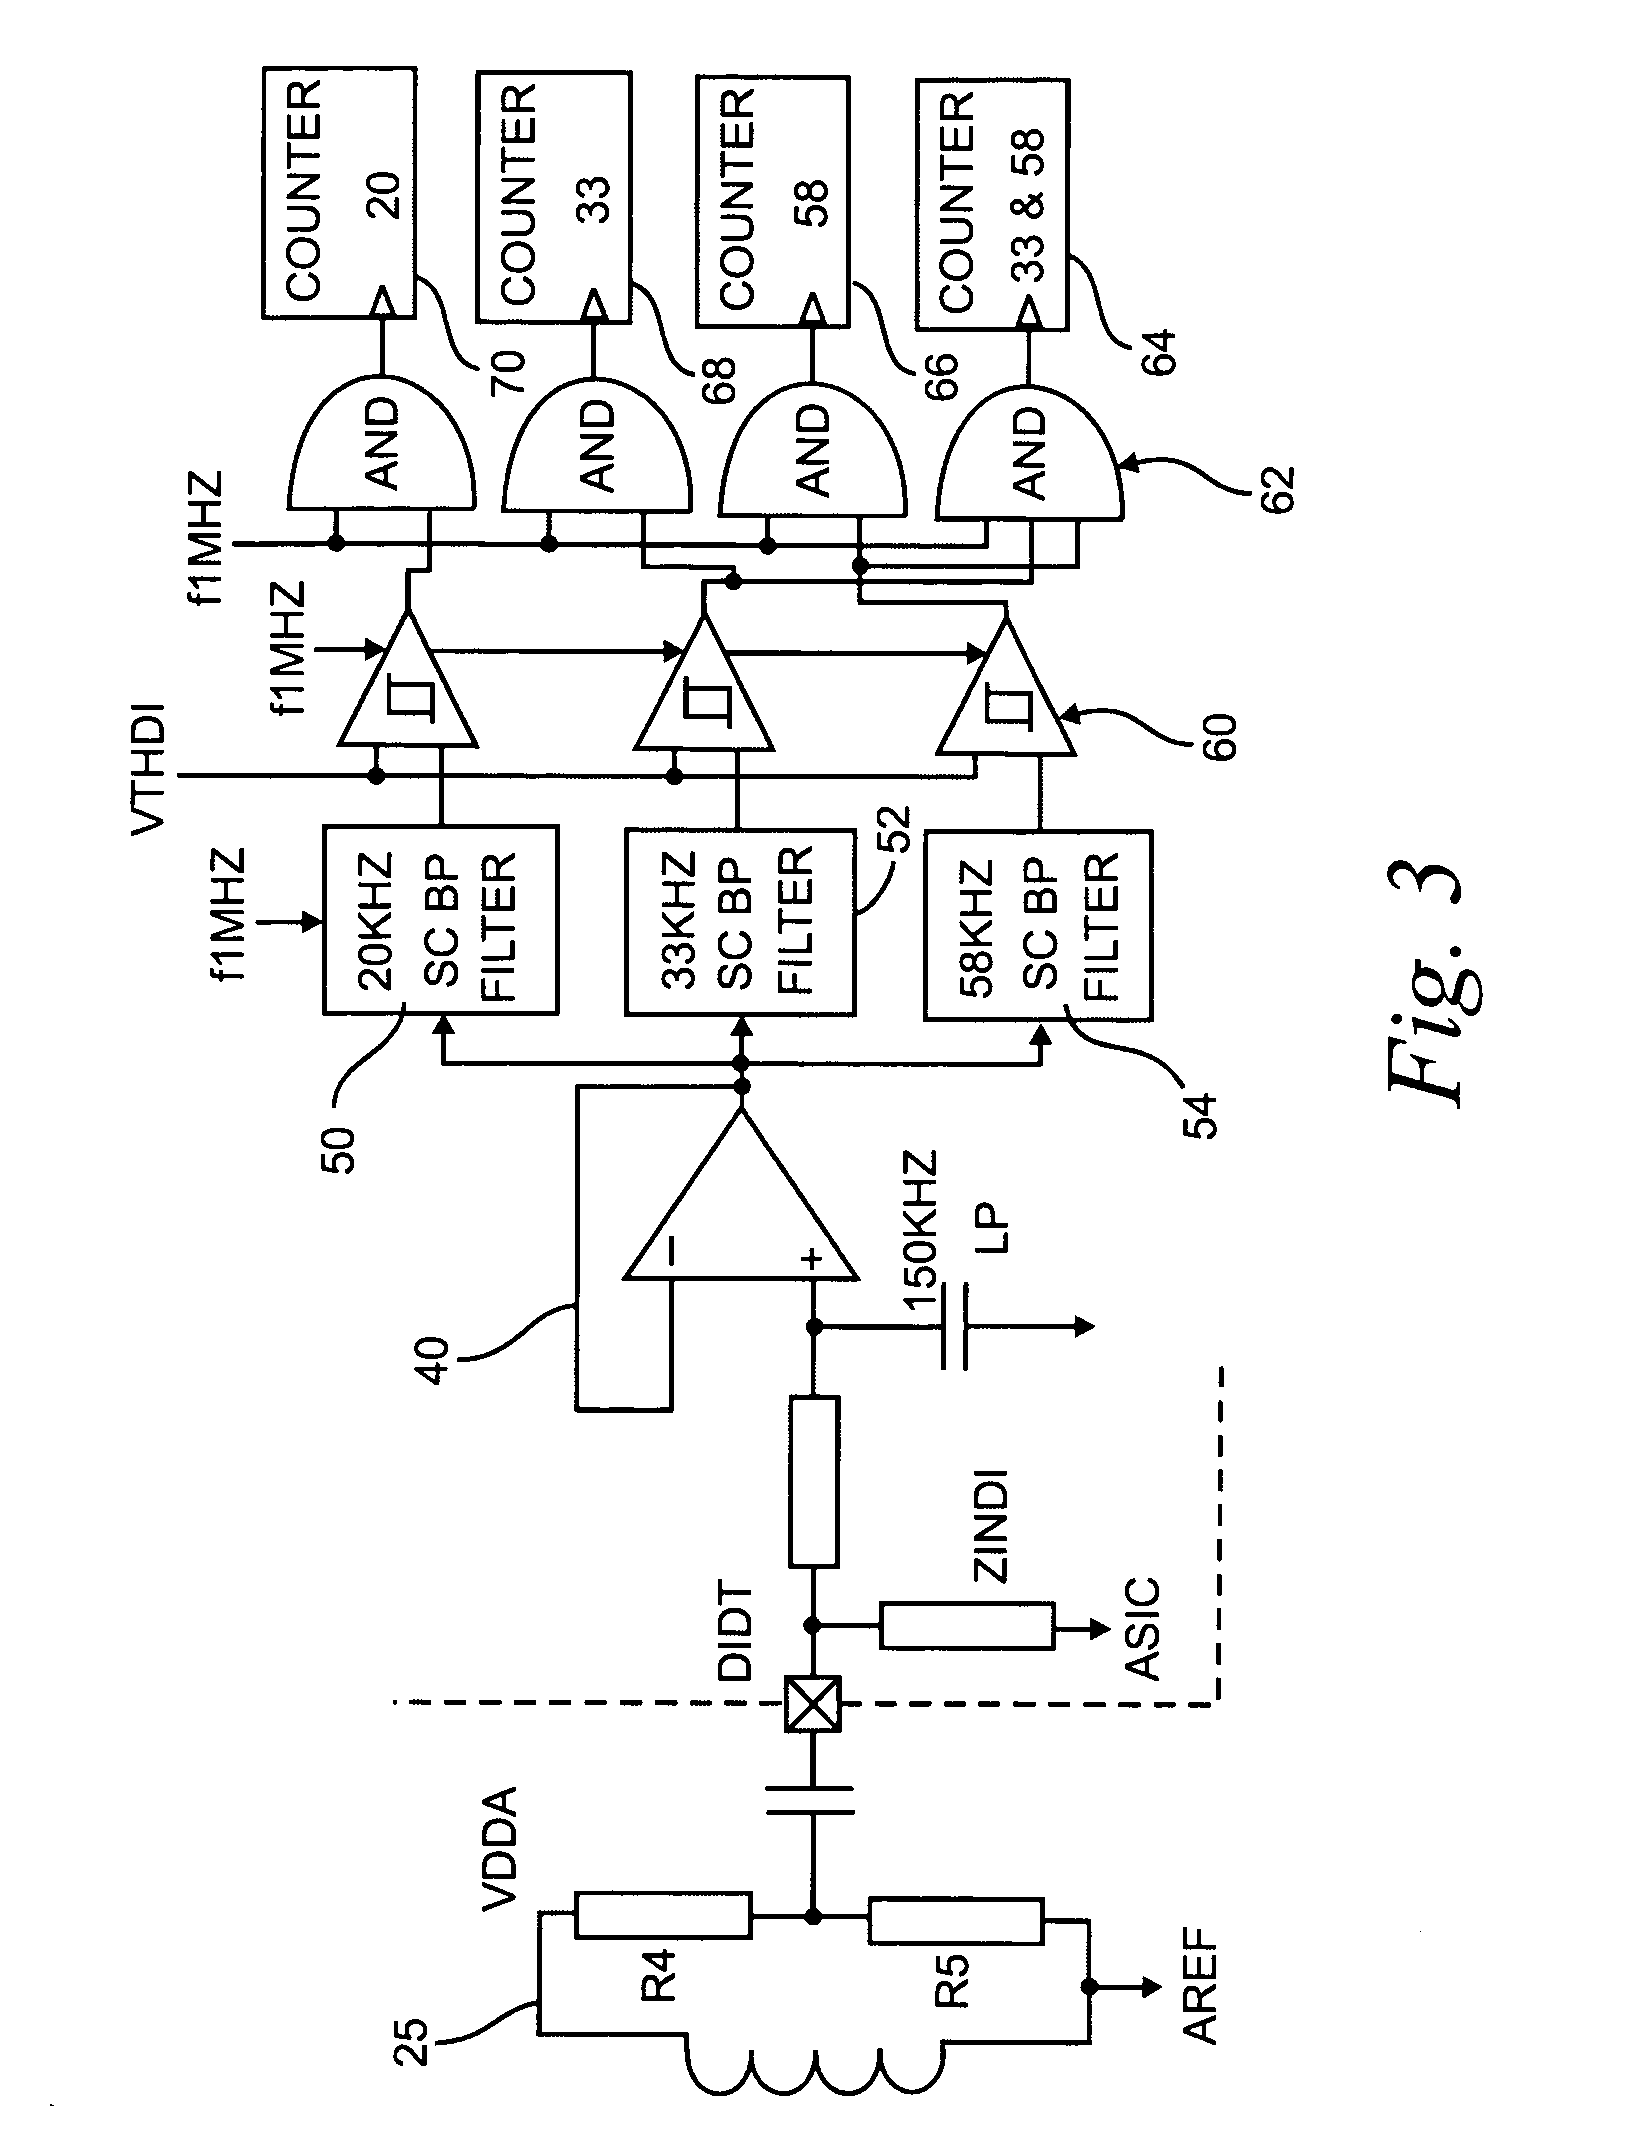 arc fault circuit interrupter and method for inhibiting series arc Residential Electrical Wiring Diagrams patent us20040042137 load recognition and series arc detection